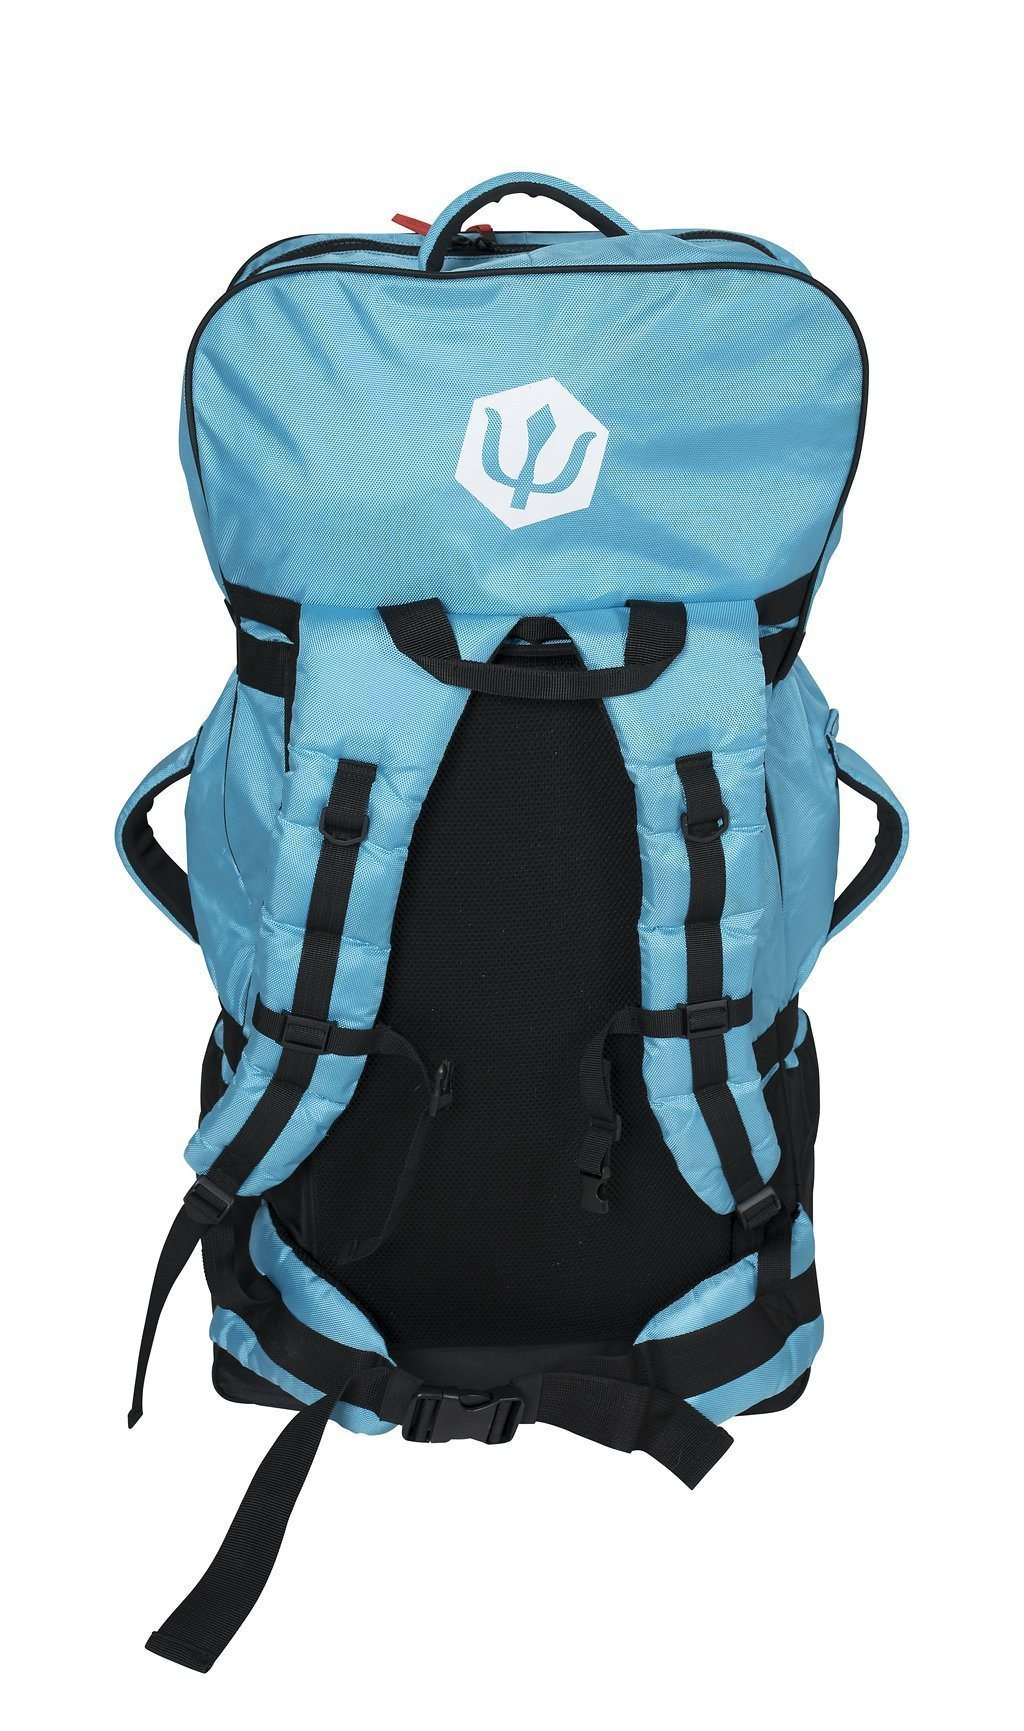 TWO iSUP Mothership Backpacks - one as a gift Accessories Hydrus